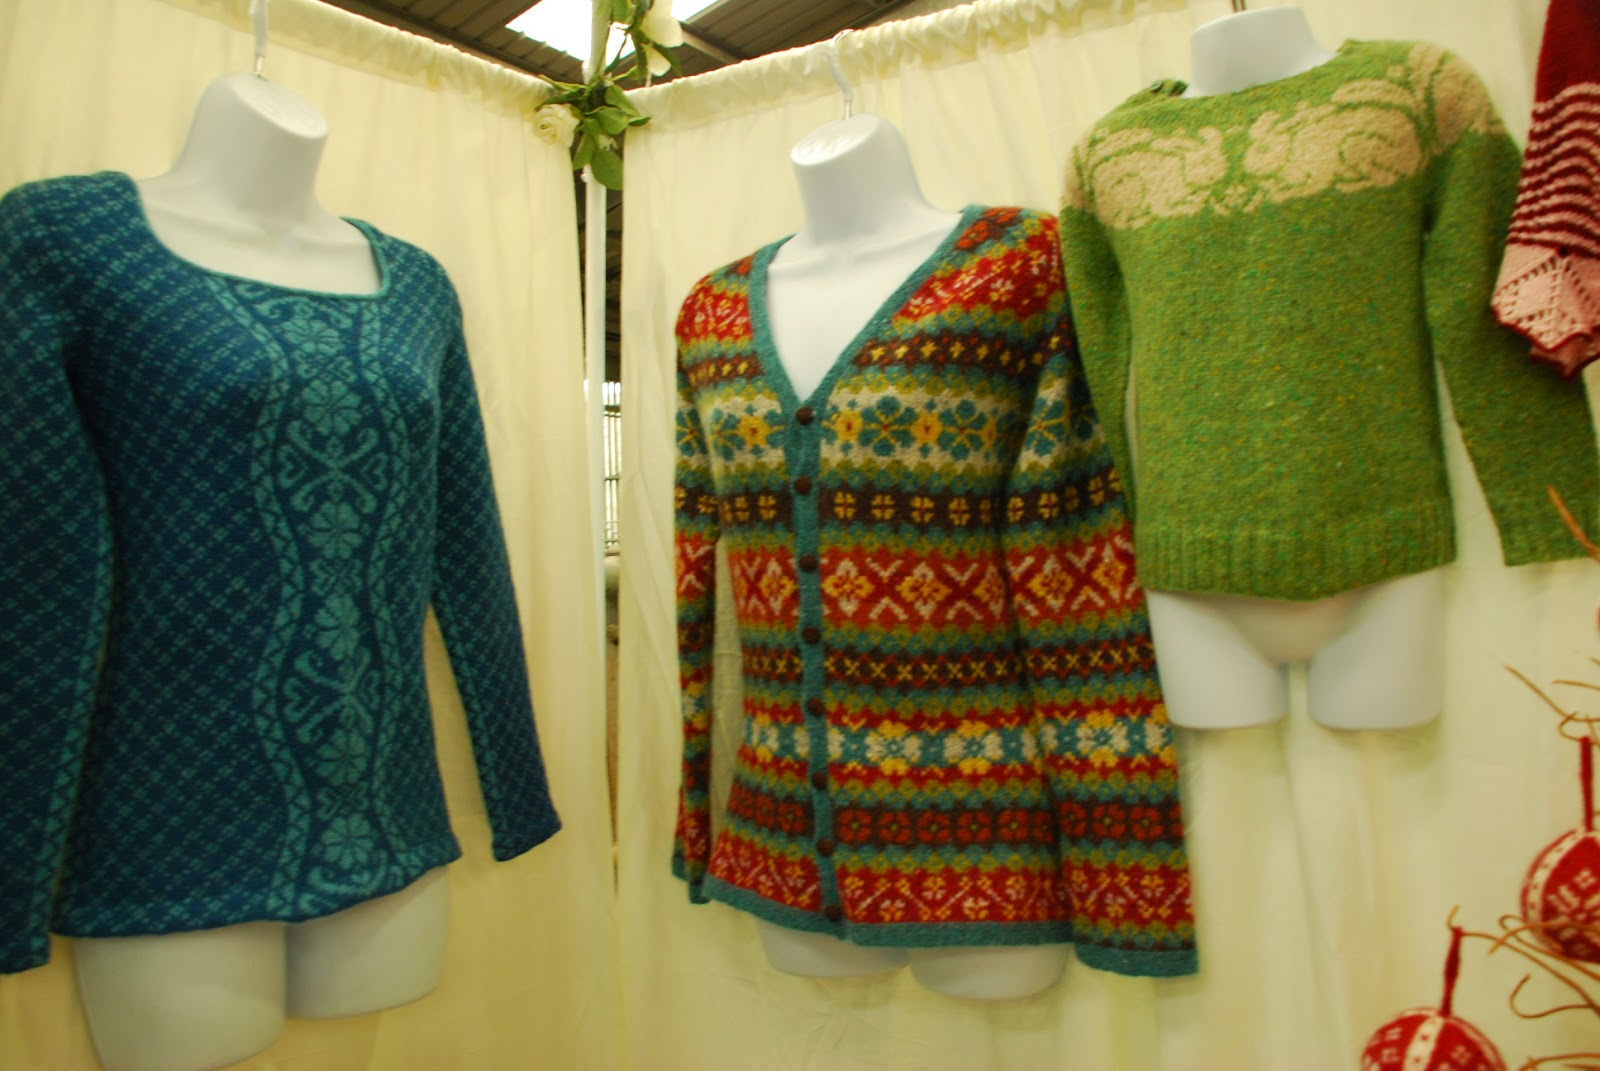 image of knitwear